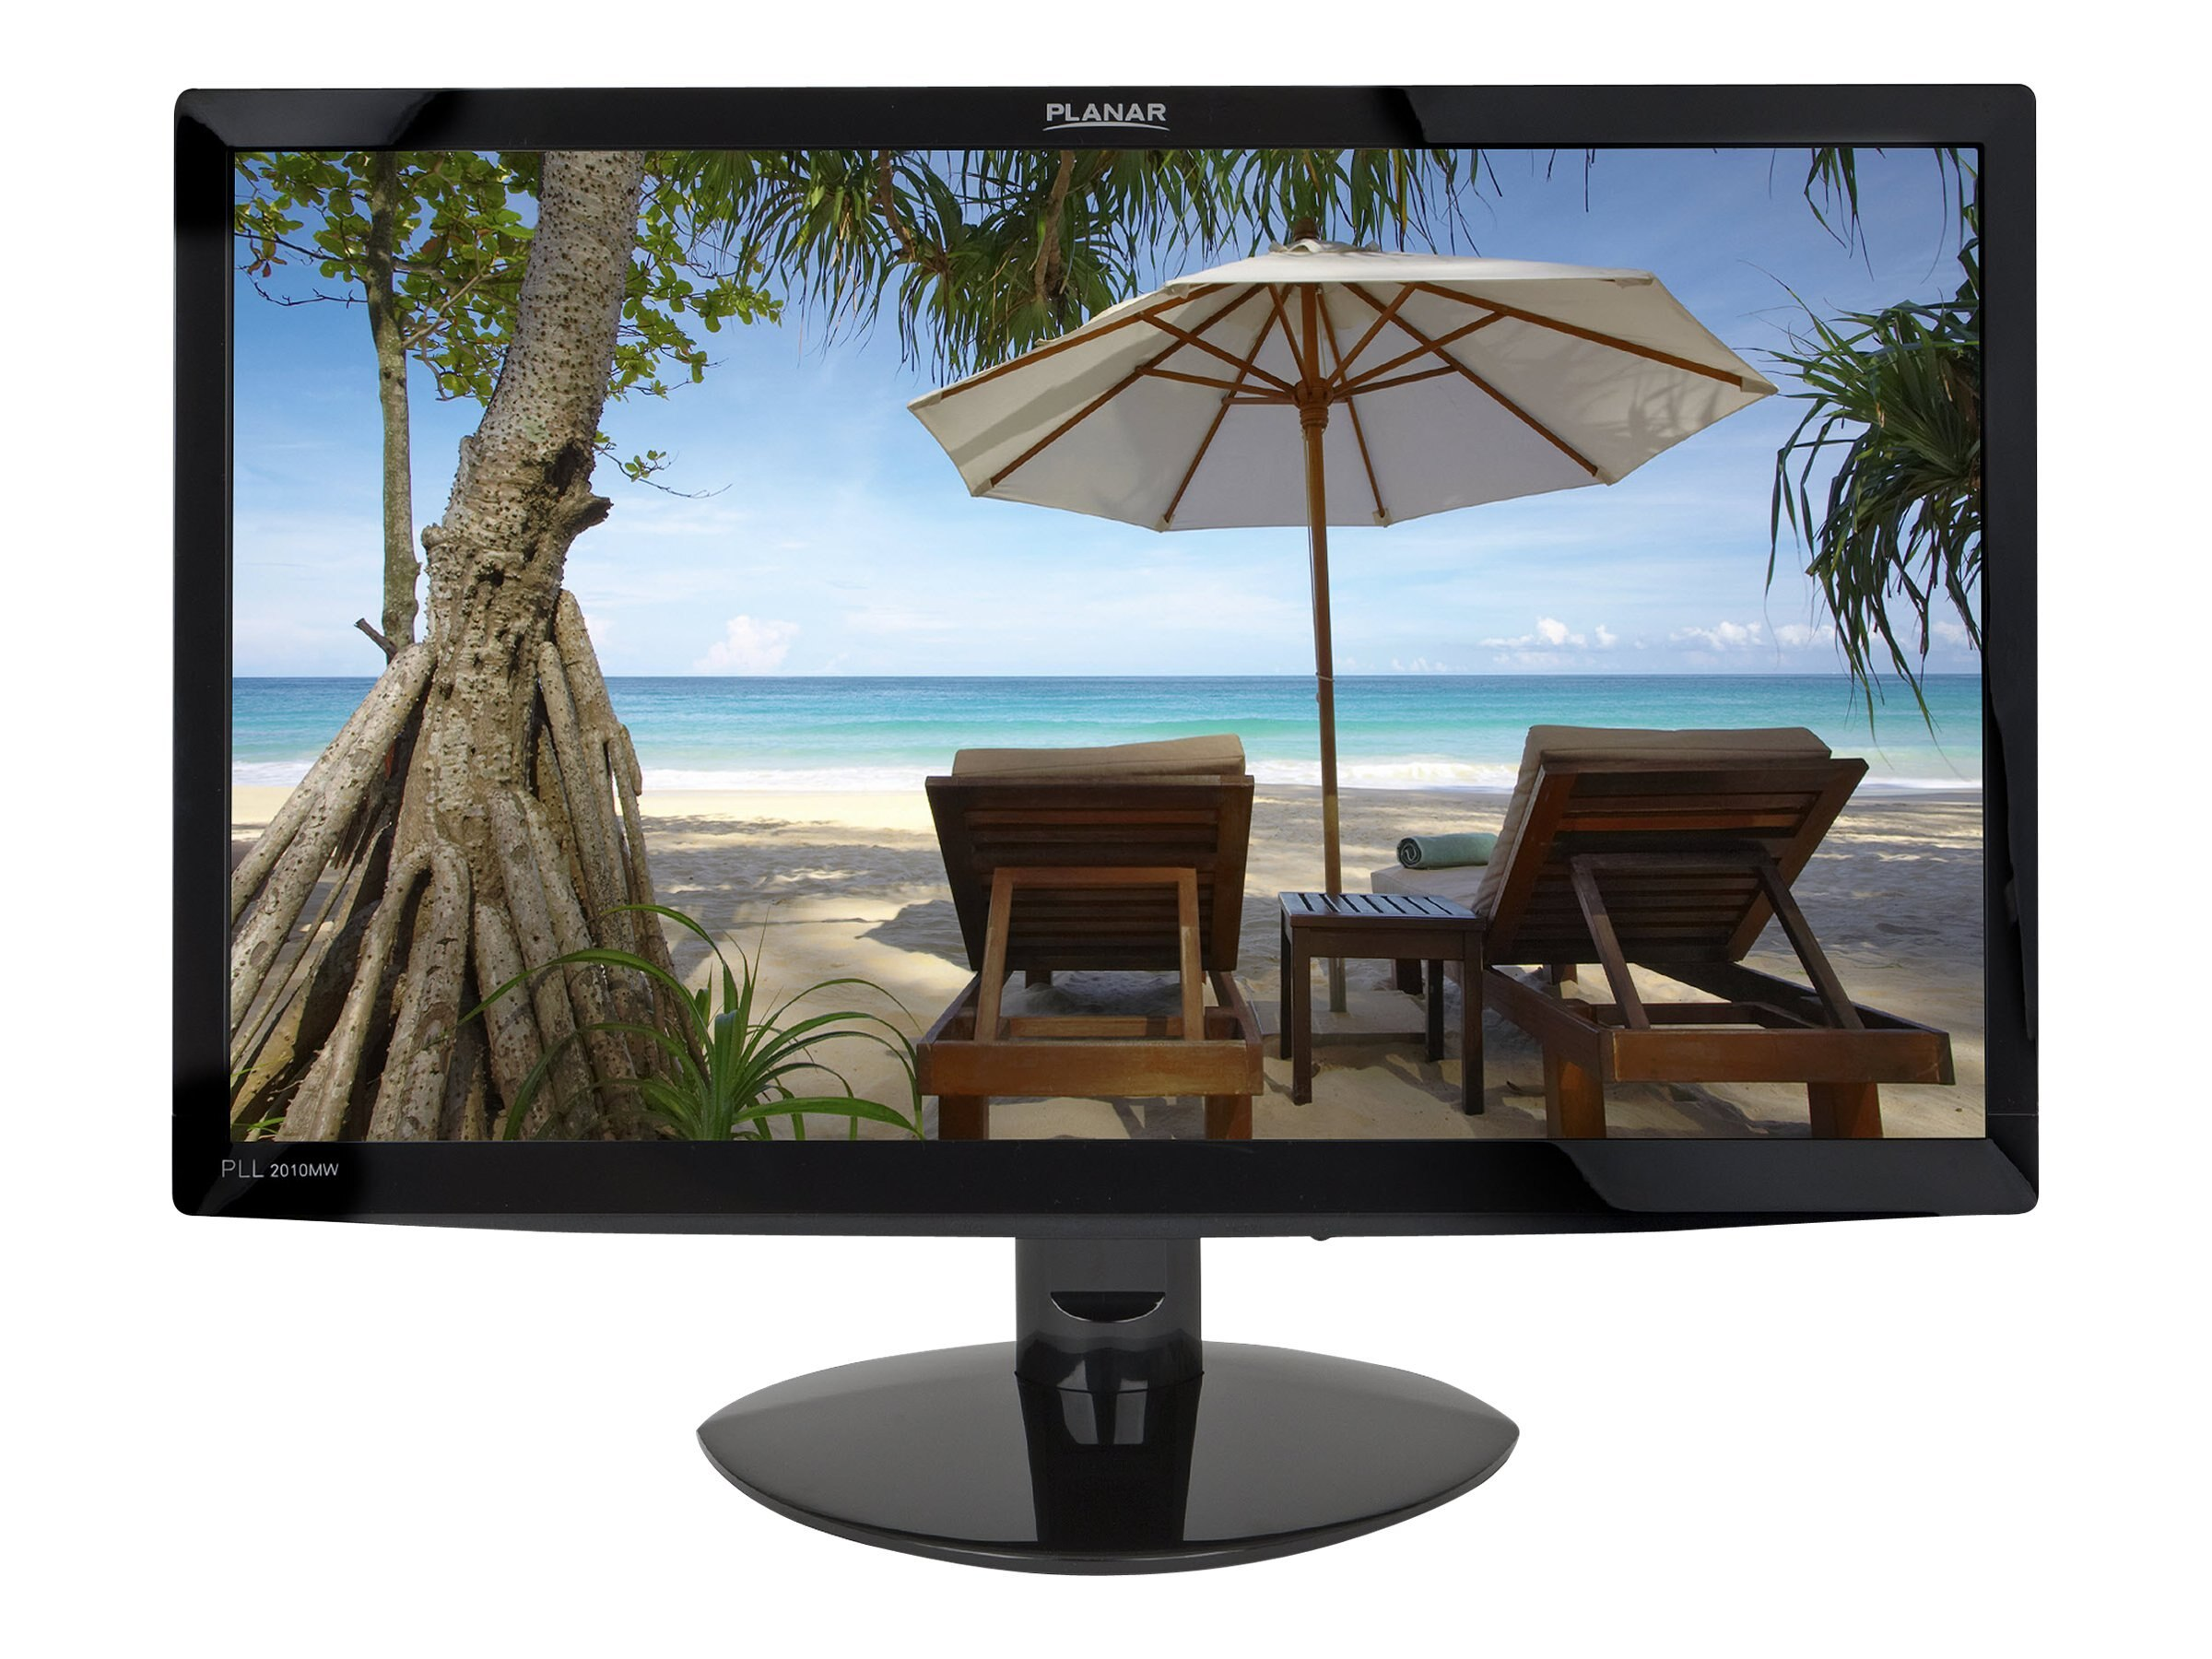 Planar 19.5 PLL2010MW LED-LCD Monitor, Black, 997-7305-00, 16120390, Monitors - LED-LCD